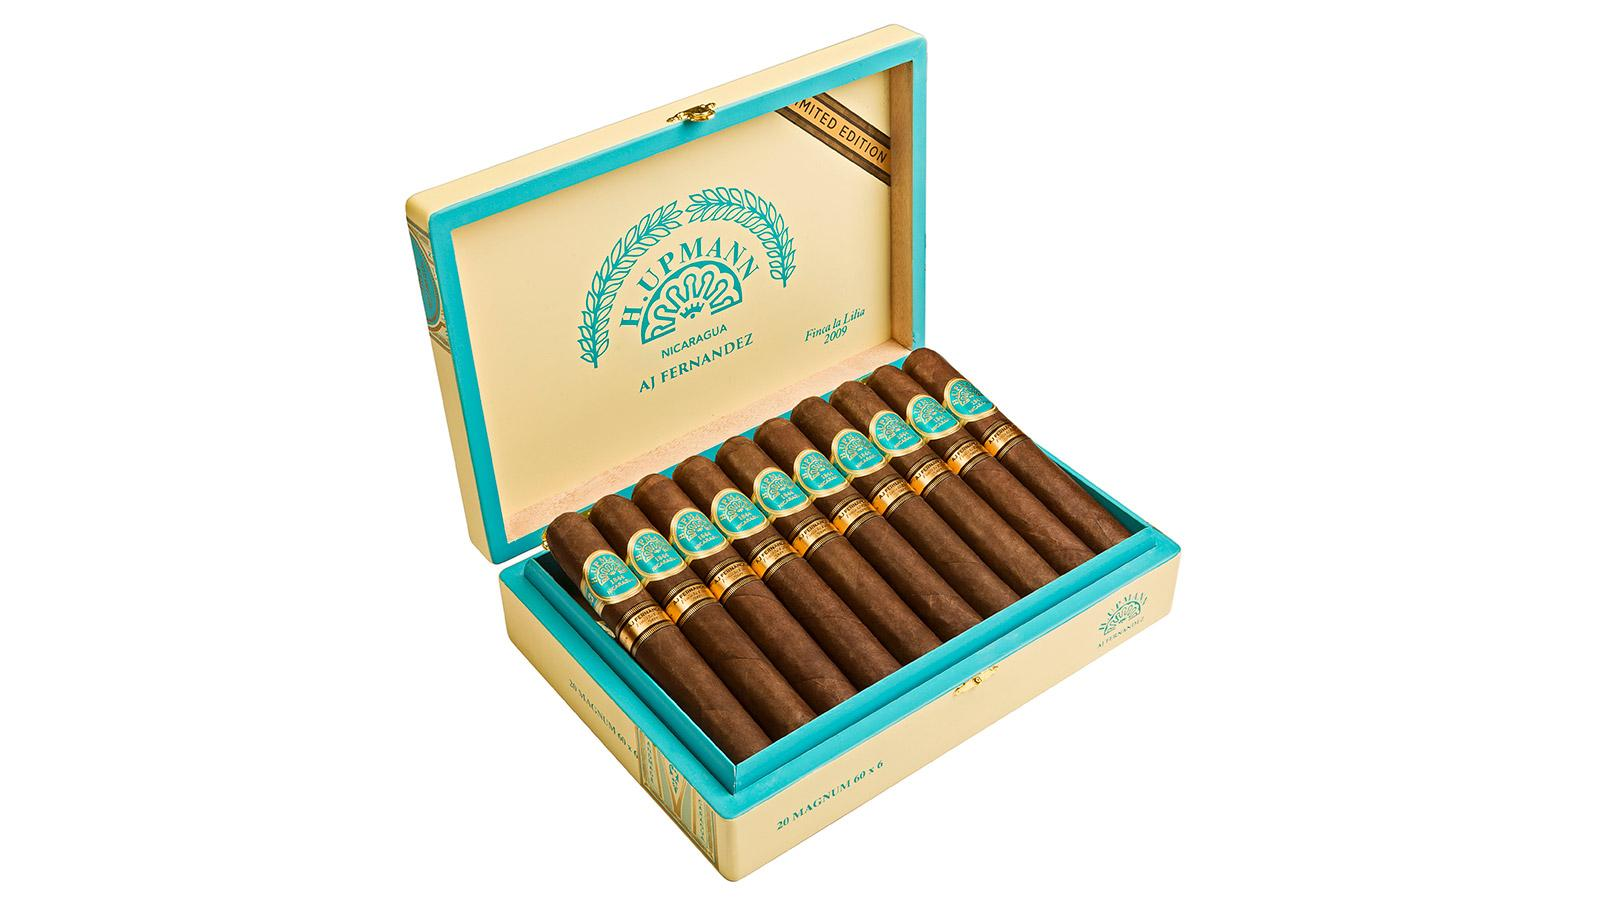 Limited-Edition H. Upmann Nicaragua by AJ Fernandez Features Vintage Tobacco